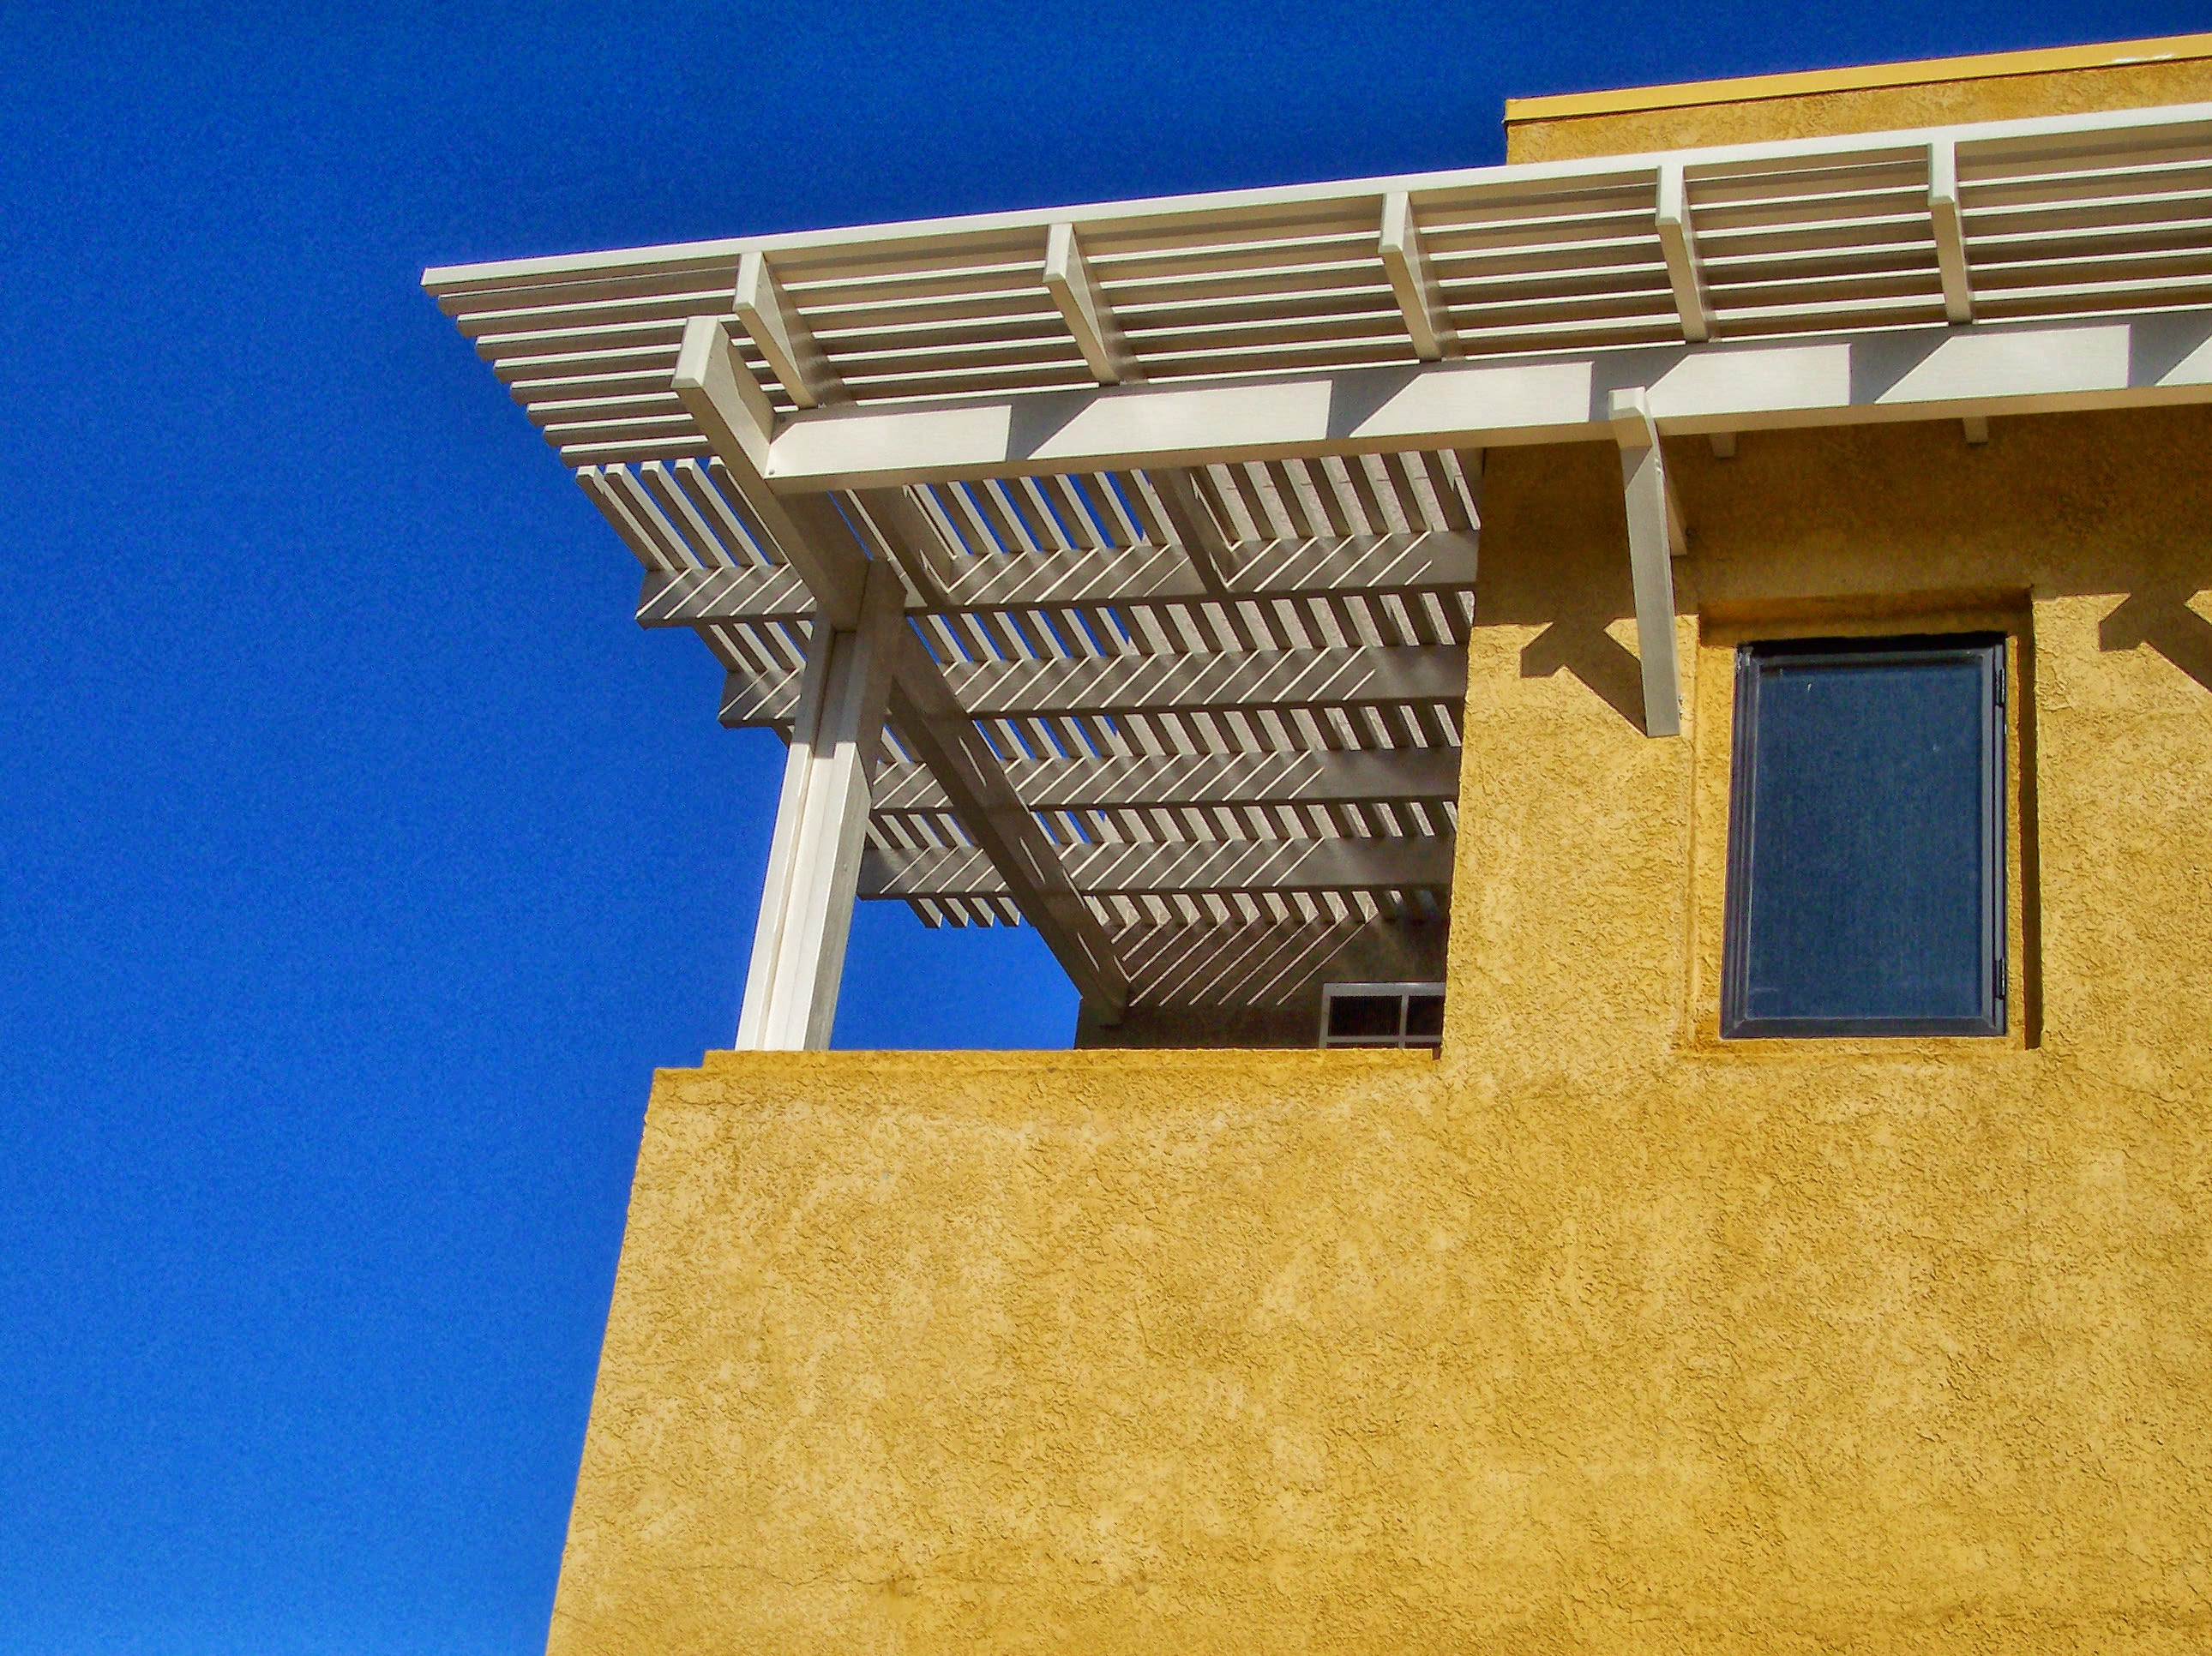 Patio Covers, Awnings in Walnut, CA (626) 333-5553